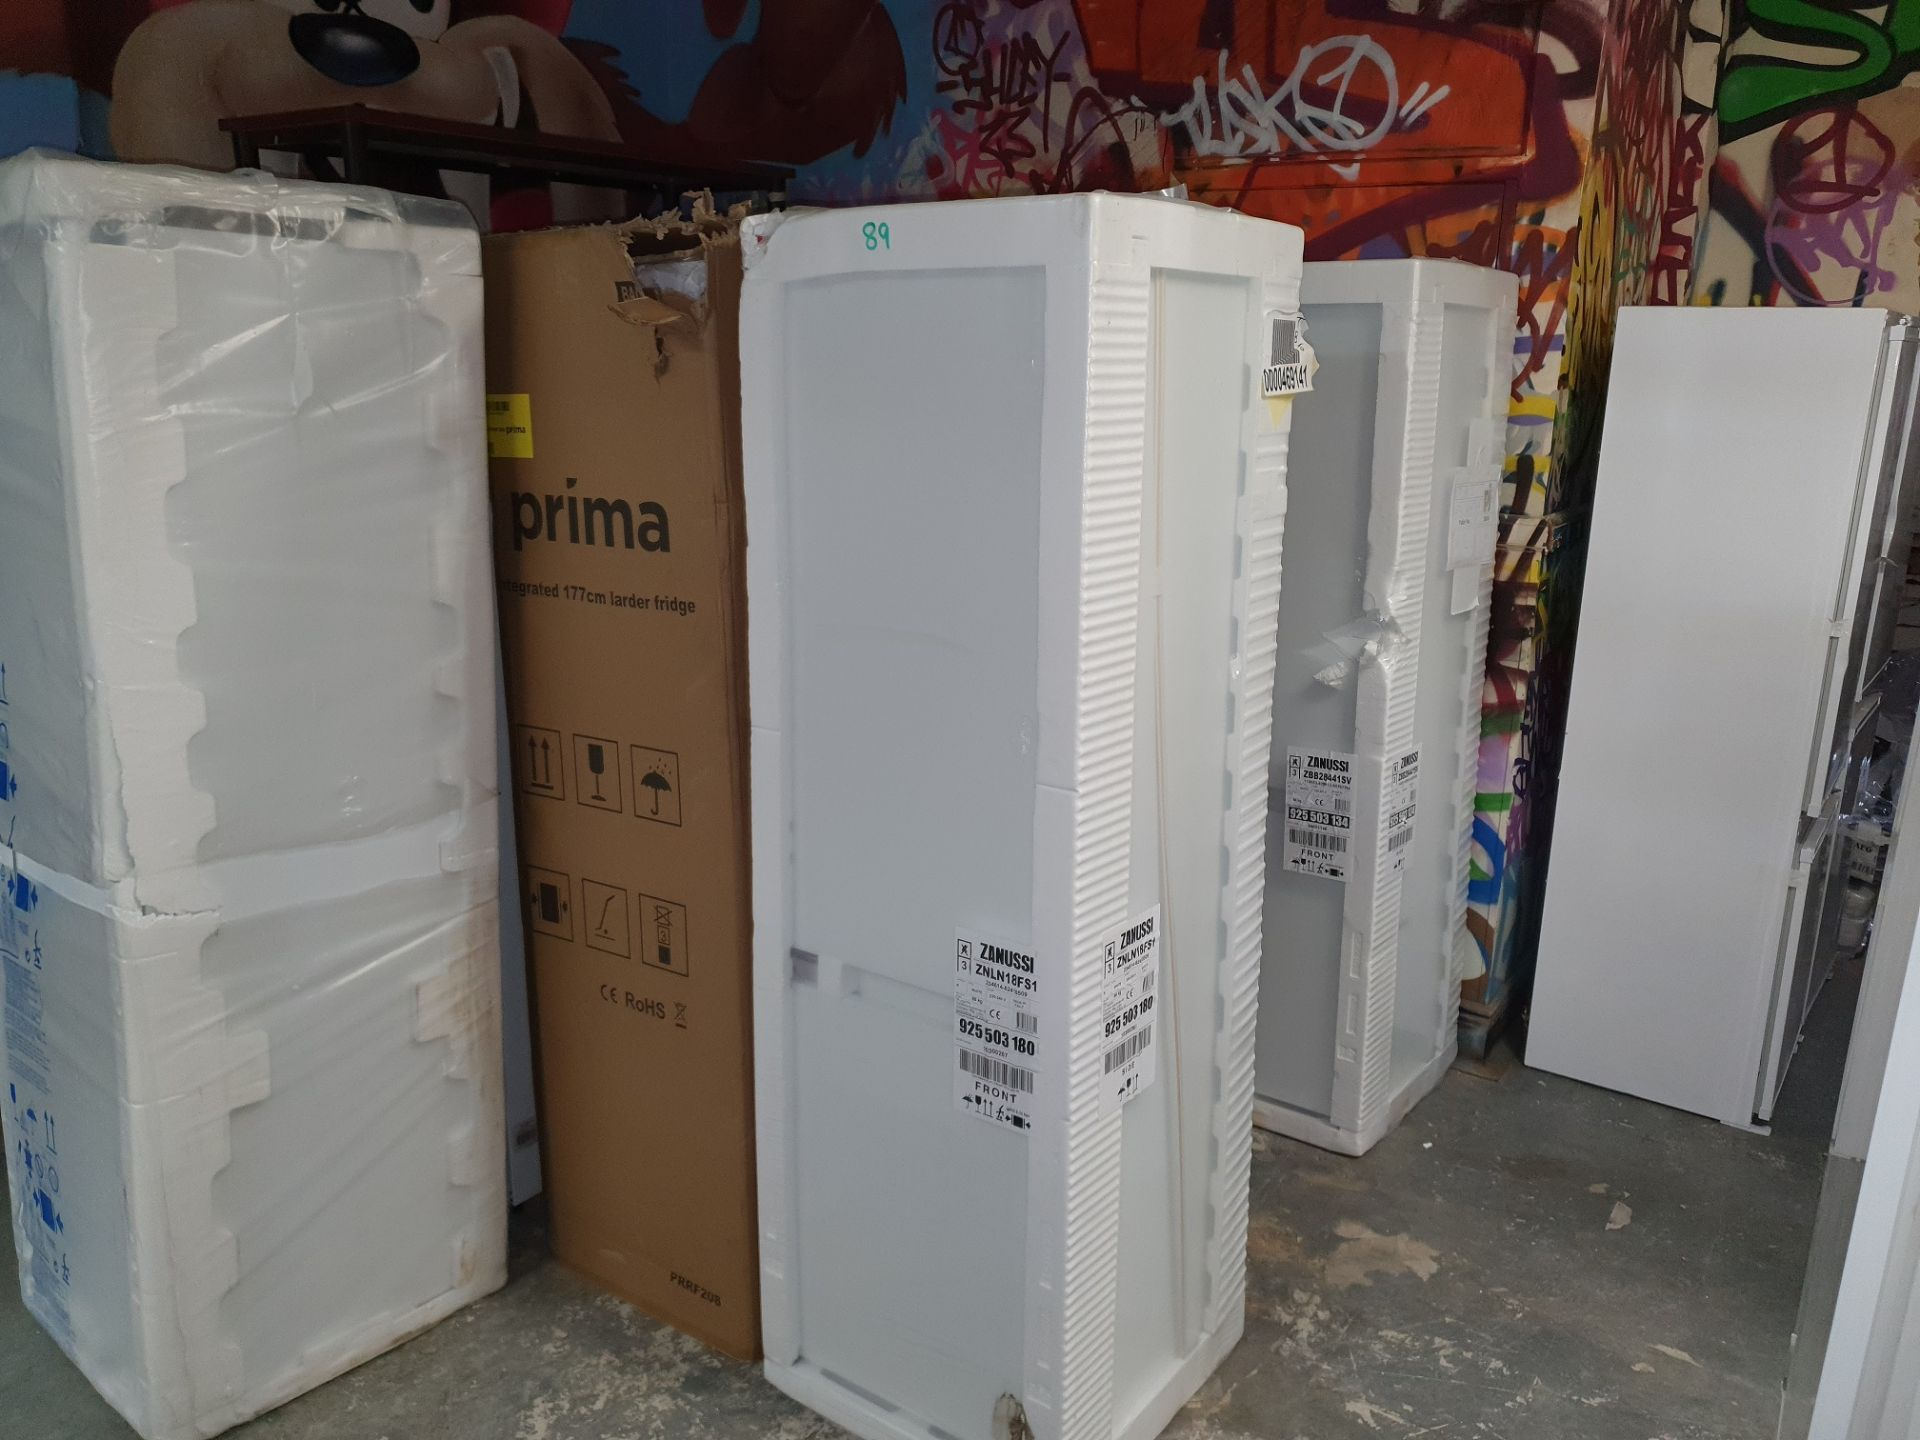 NEW/GRADED AND PACKAGED Prima PRRF208 Tall 177.6cm Integrated Larder Fridge (Slight external - Image 3 of 14